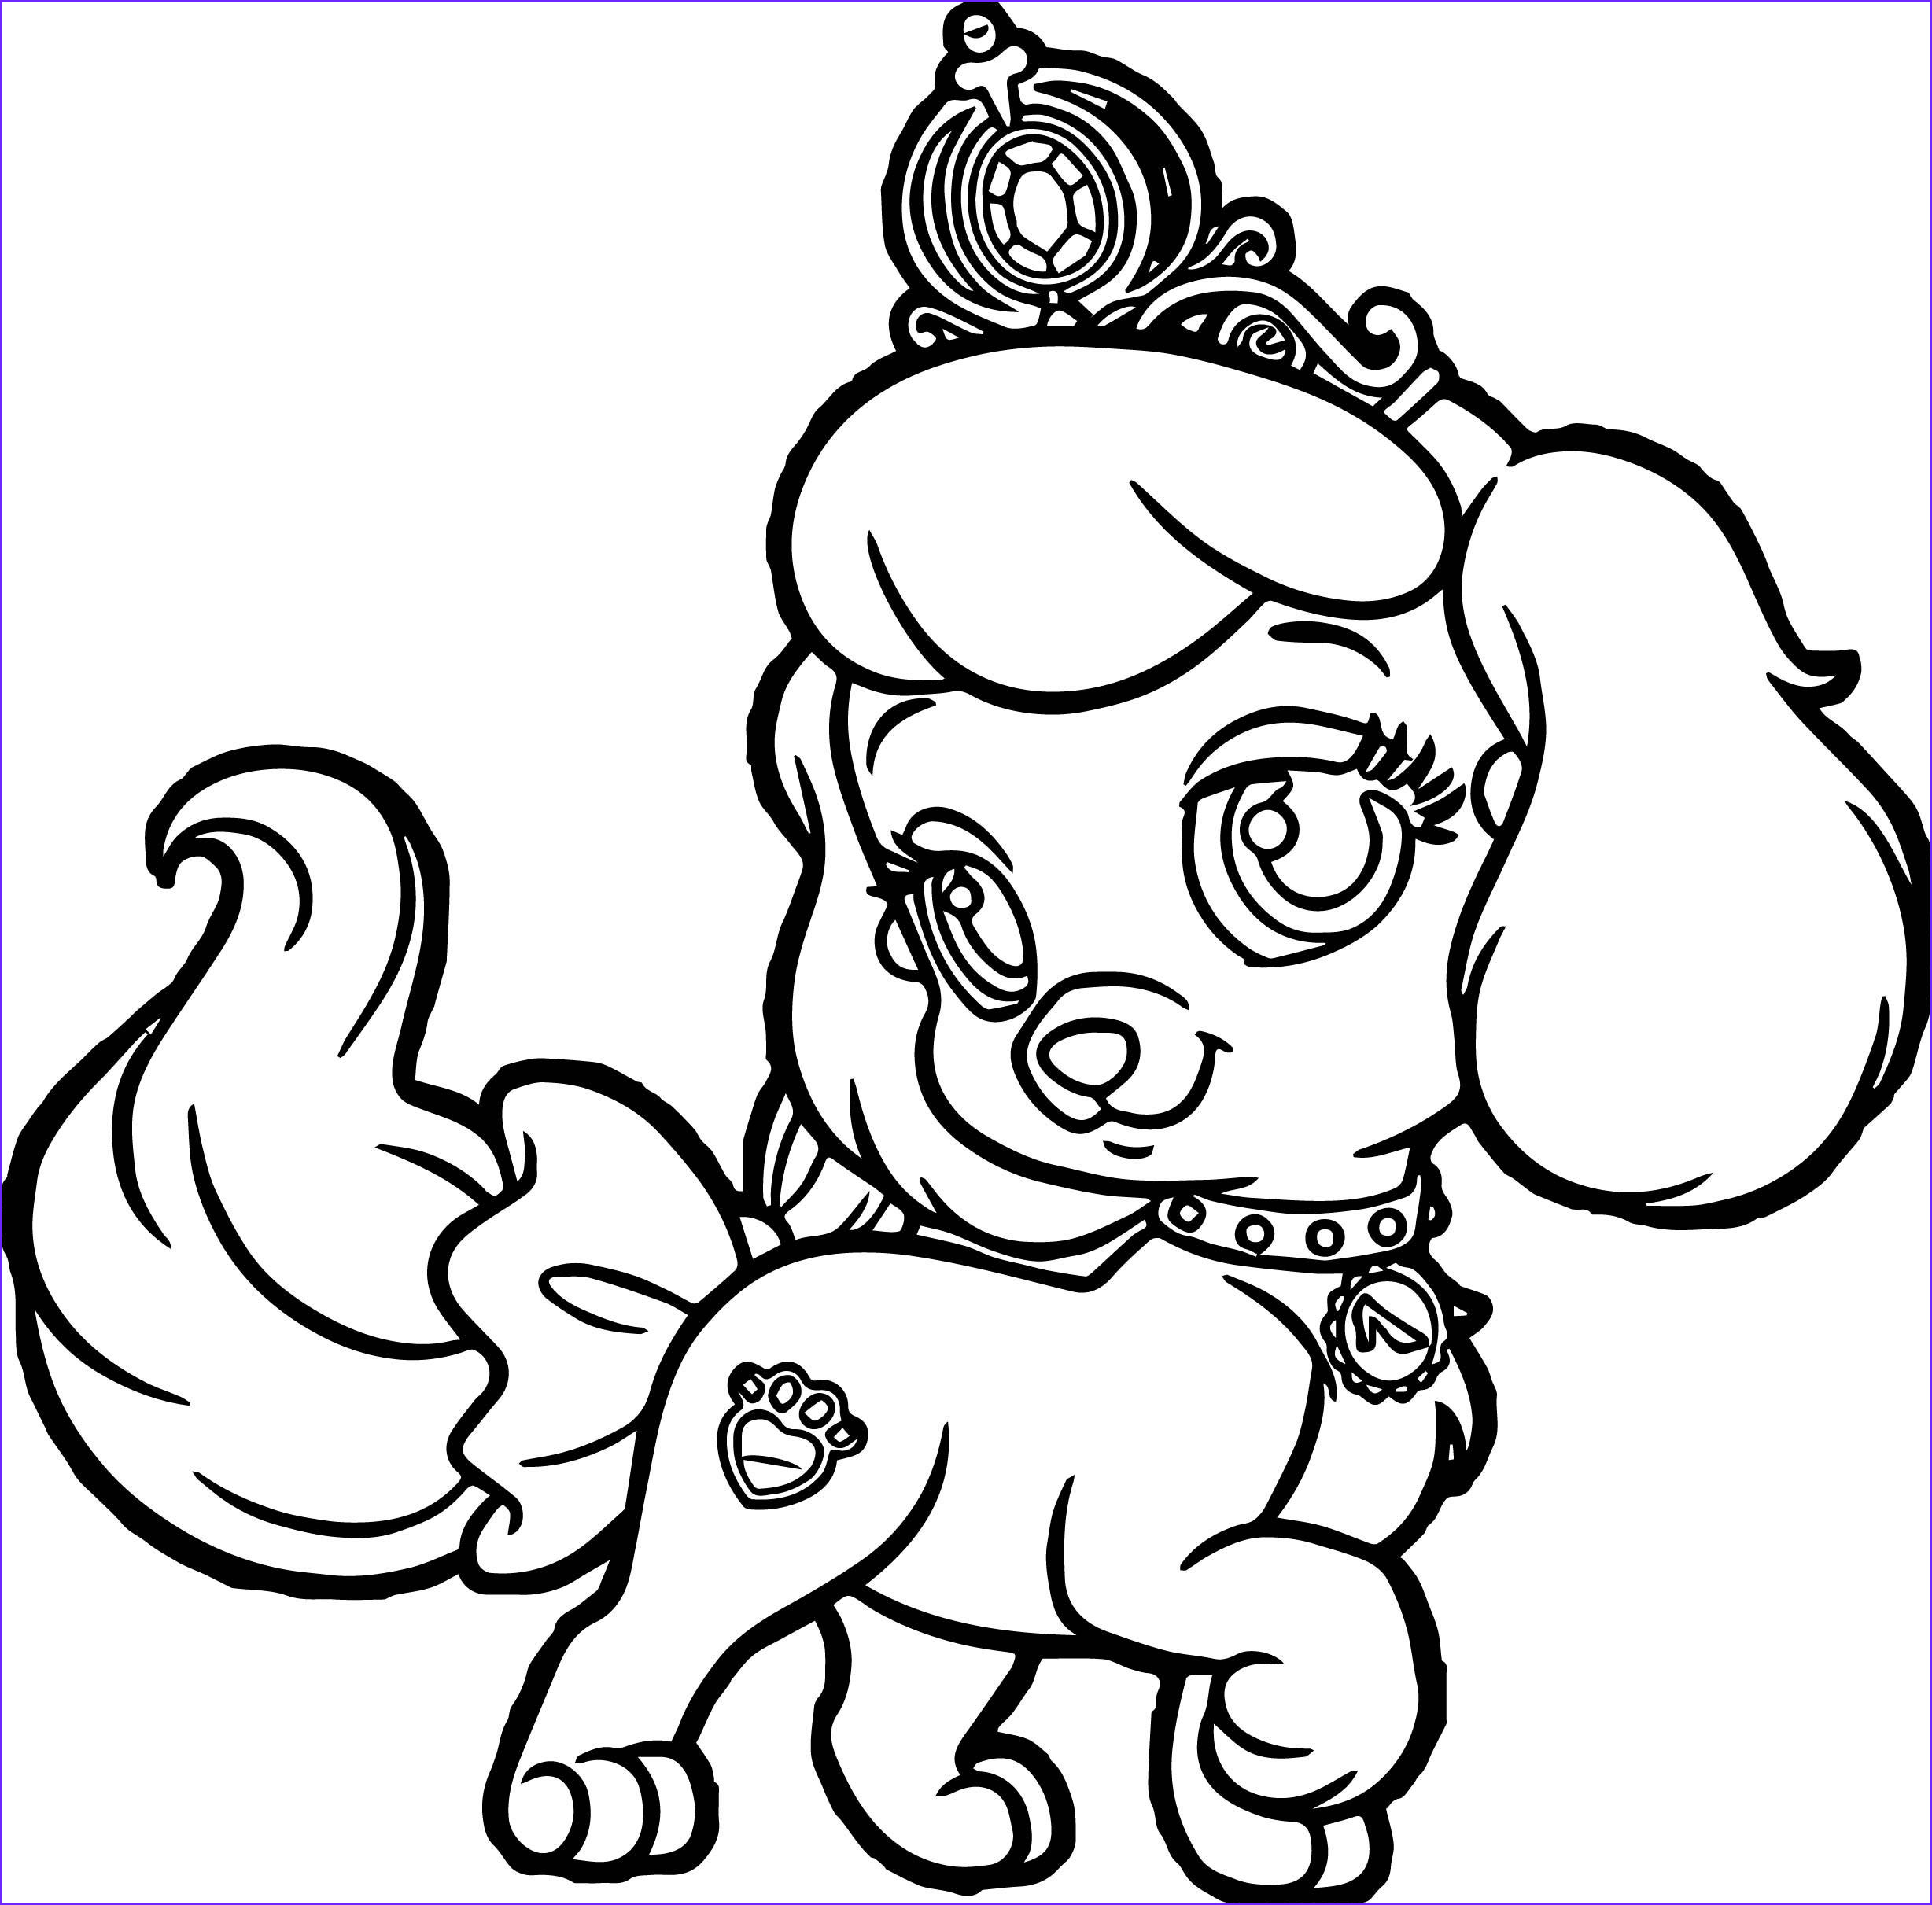 Puppy Coloring Page for Kids Best Of Photos Sad Puppy Coloring Pages at Getcolorings